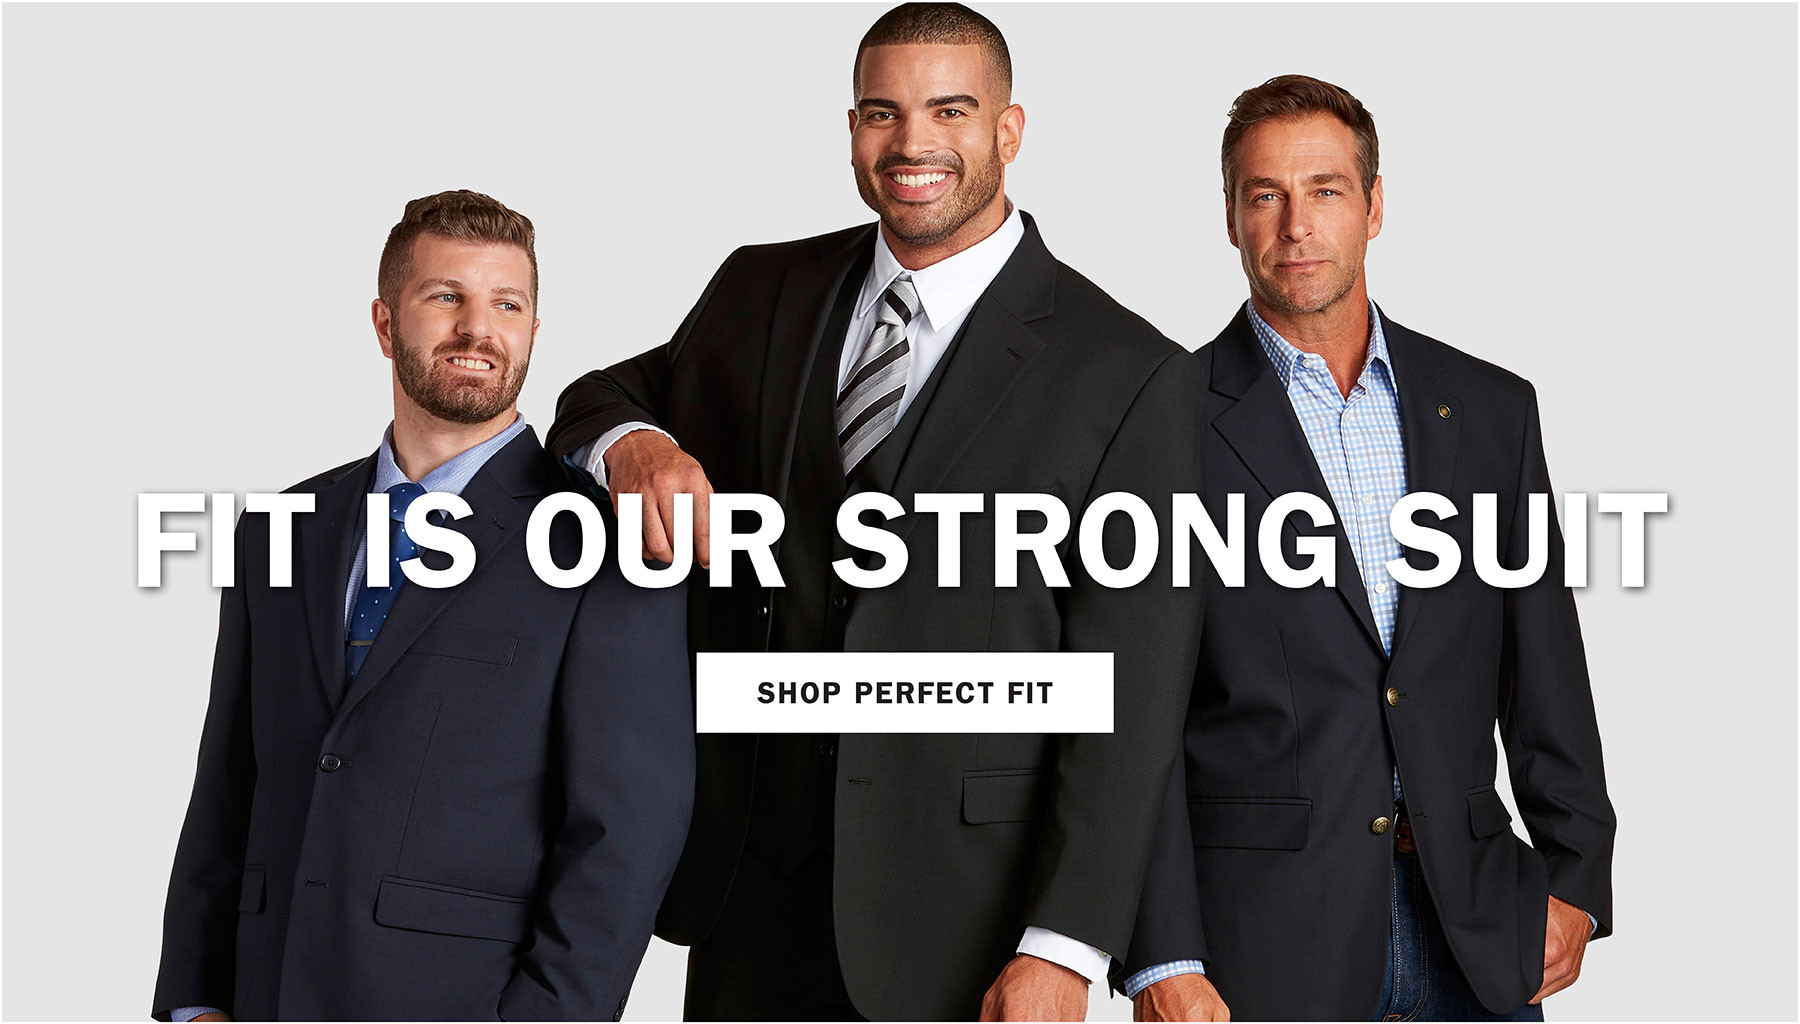 FIT IS OUR STRONG SUIT | SHOP PERFECT FIT